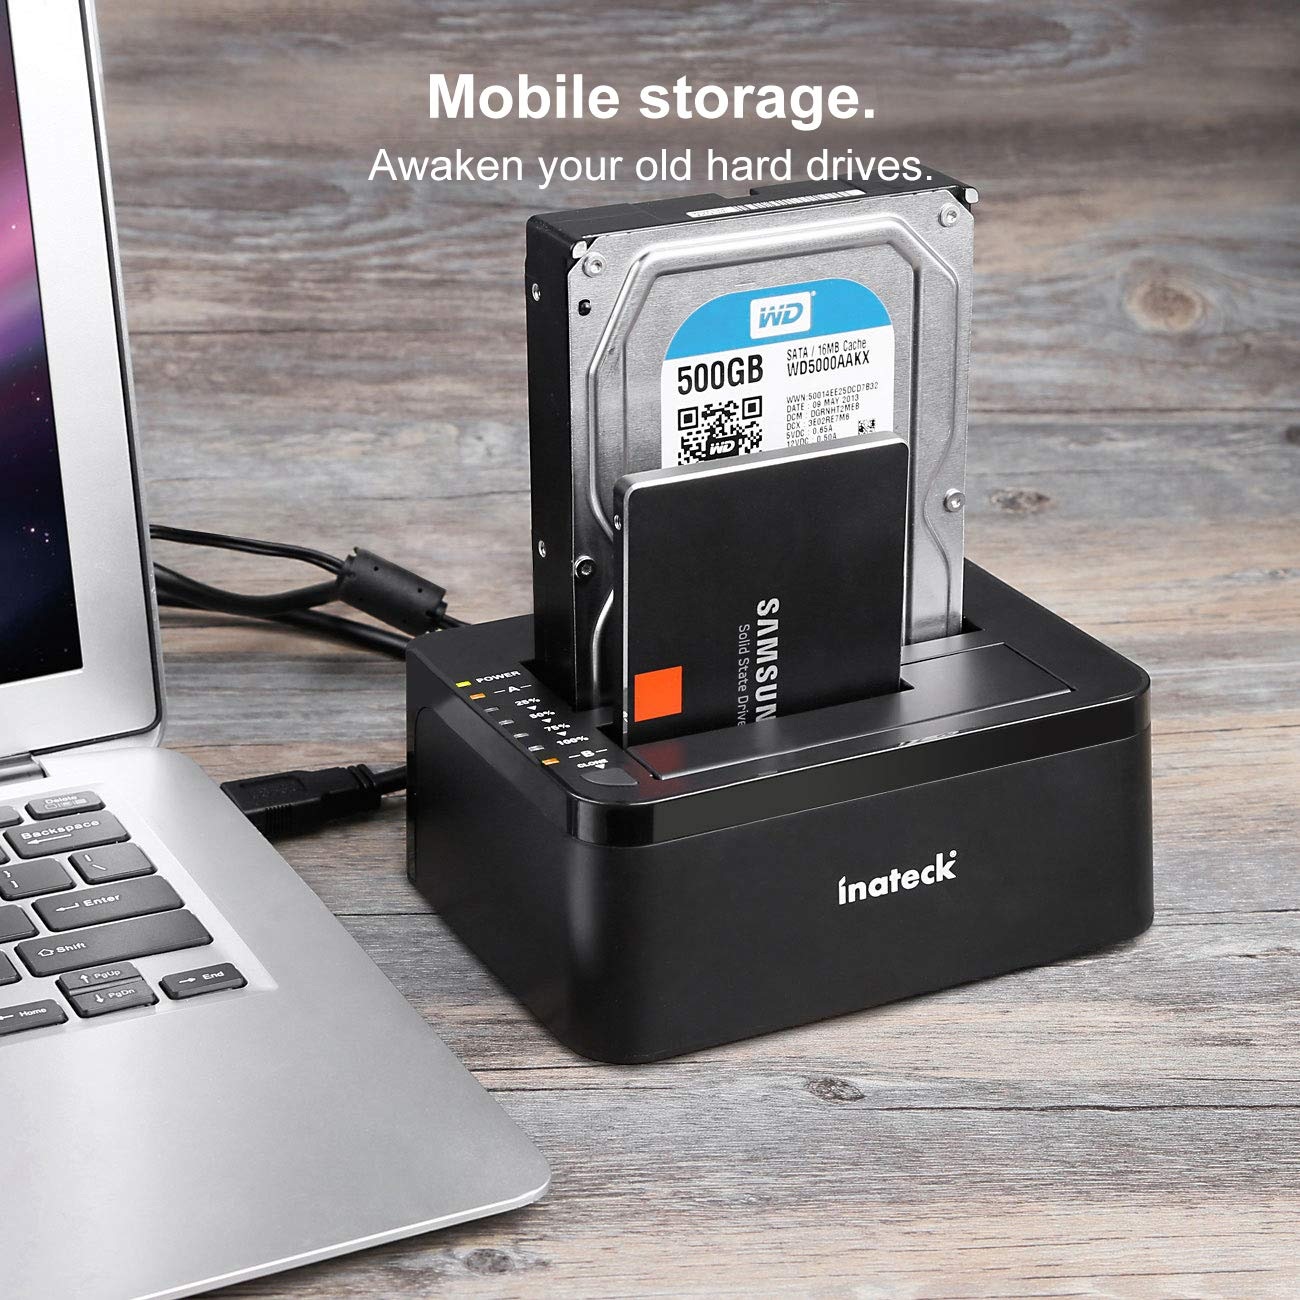 Tool-free SATA I// II// III Support 2x 8TB /& UASP Inateck USB 3.0 to SATA 2-Bay USB 3.0 Hard Drive Docking Station with Offline Clone Function for 2.5 Inch /& 3.5 Inch HDD SSD SATA